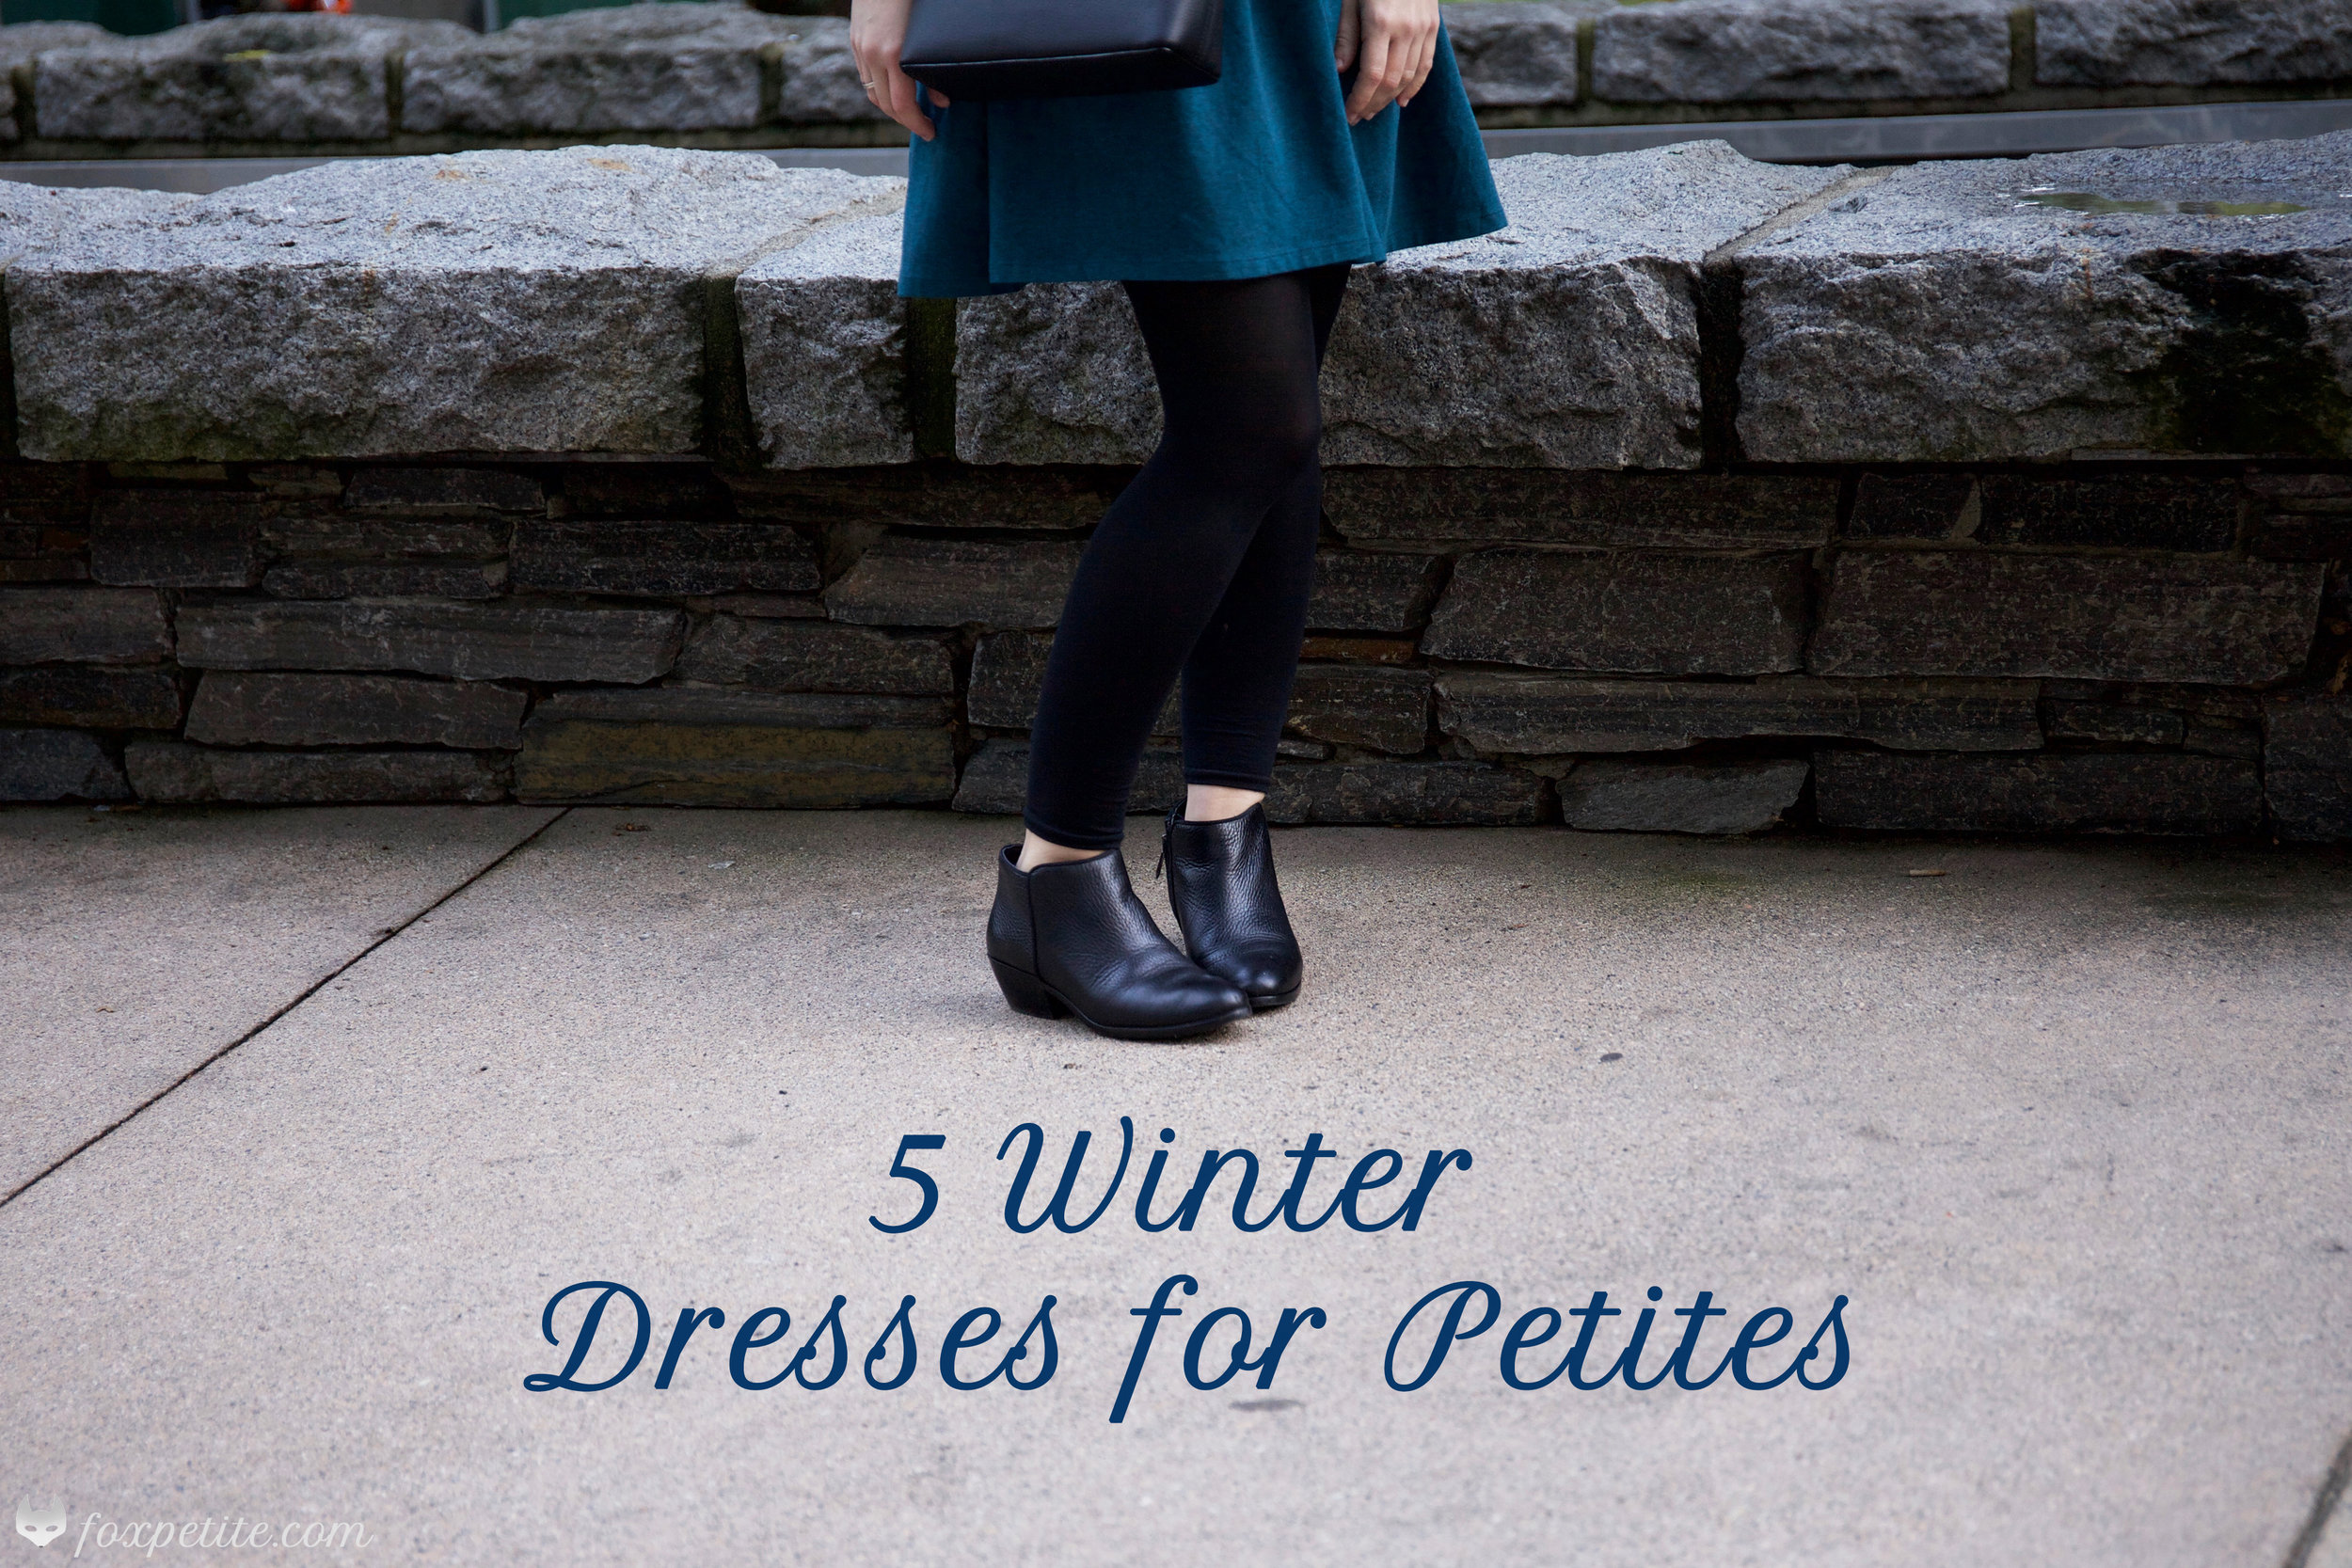 5 Winter Dresses For Petites | style tips for short girls | Fox Petite | women's fashion blog